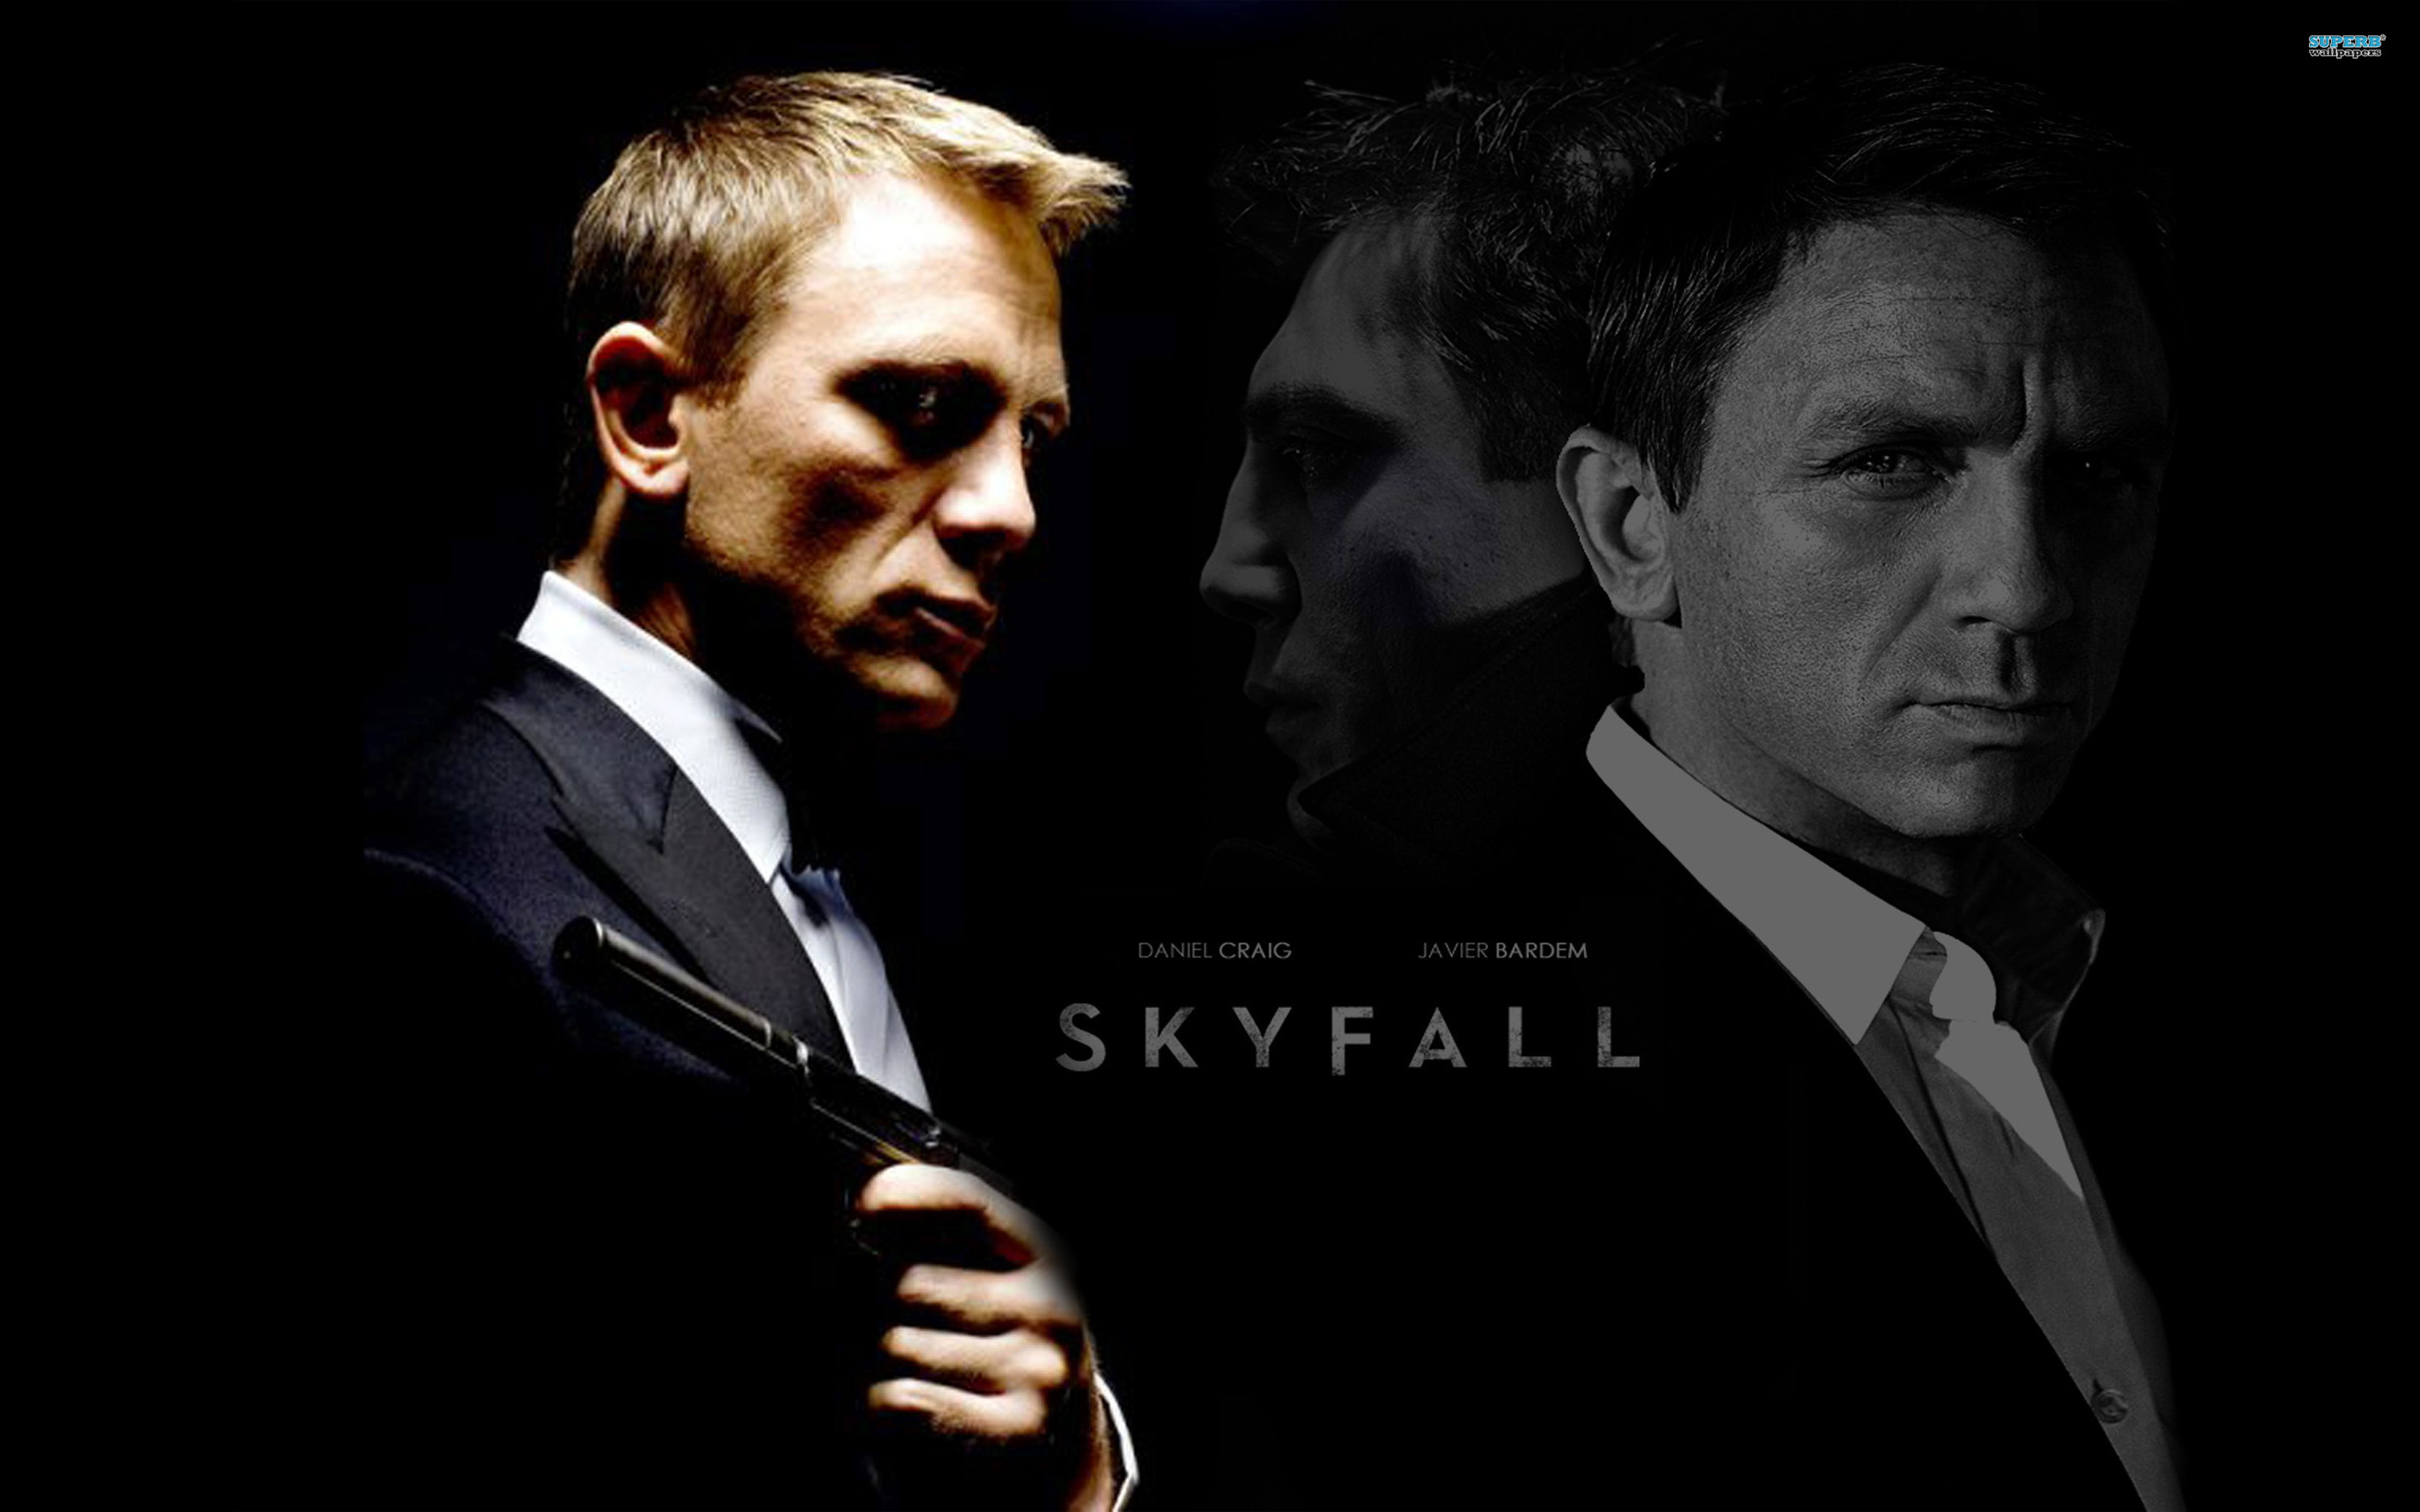 James Bond - Skyfall wallpaper 2880x1800 jpg